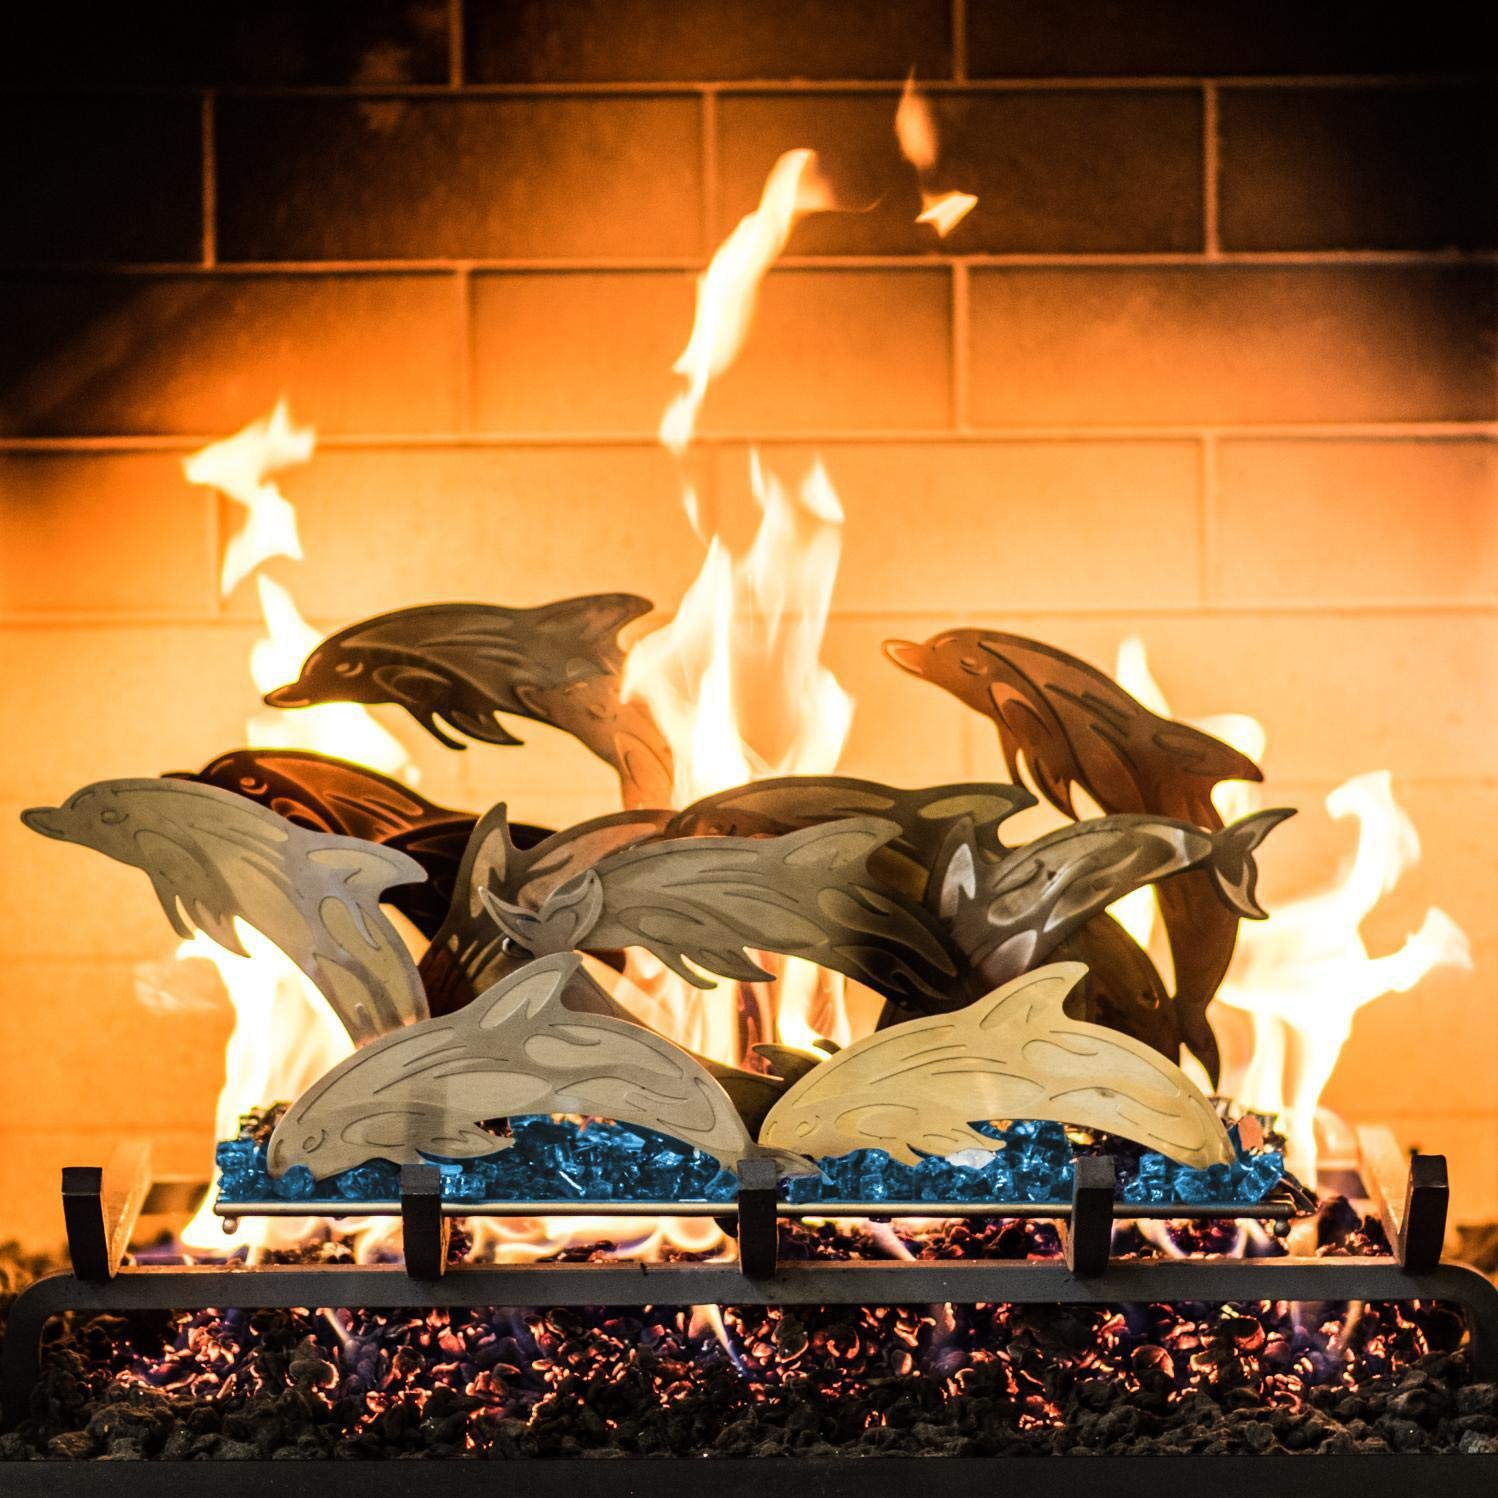 Lakeview Outdoor Designs Fireplace Sculpture - Dolphin Seascape w/Sky Blue Fire Glass (Burner Not Included) by Lakeview Outdoor Designs